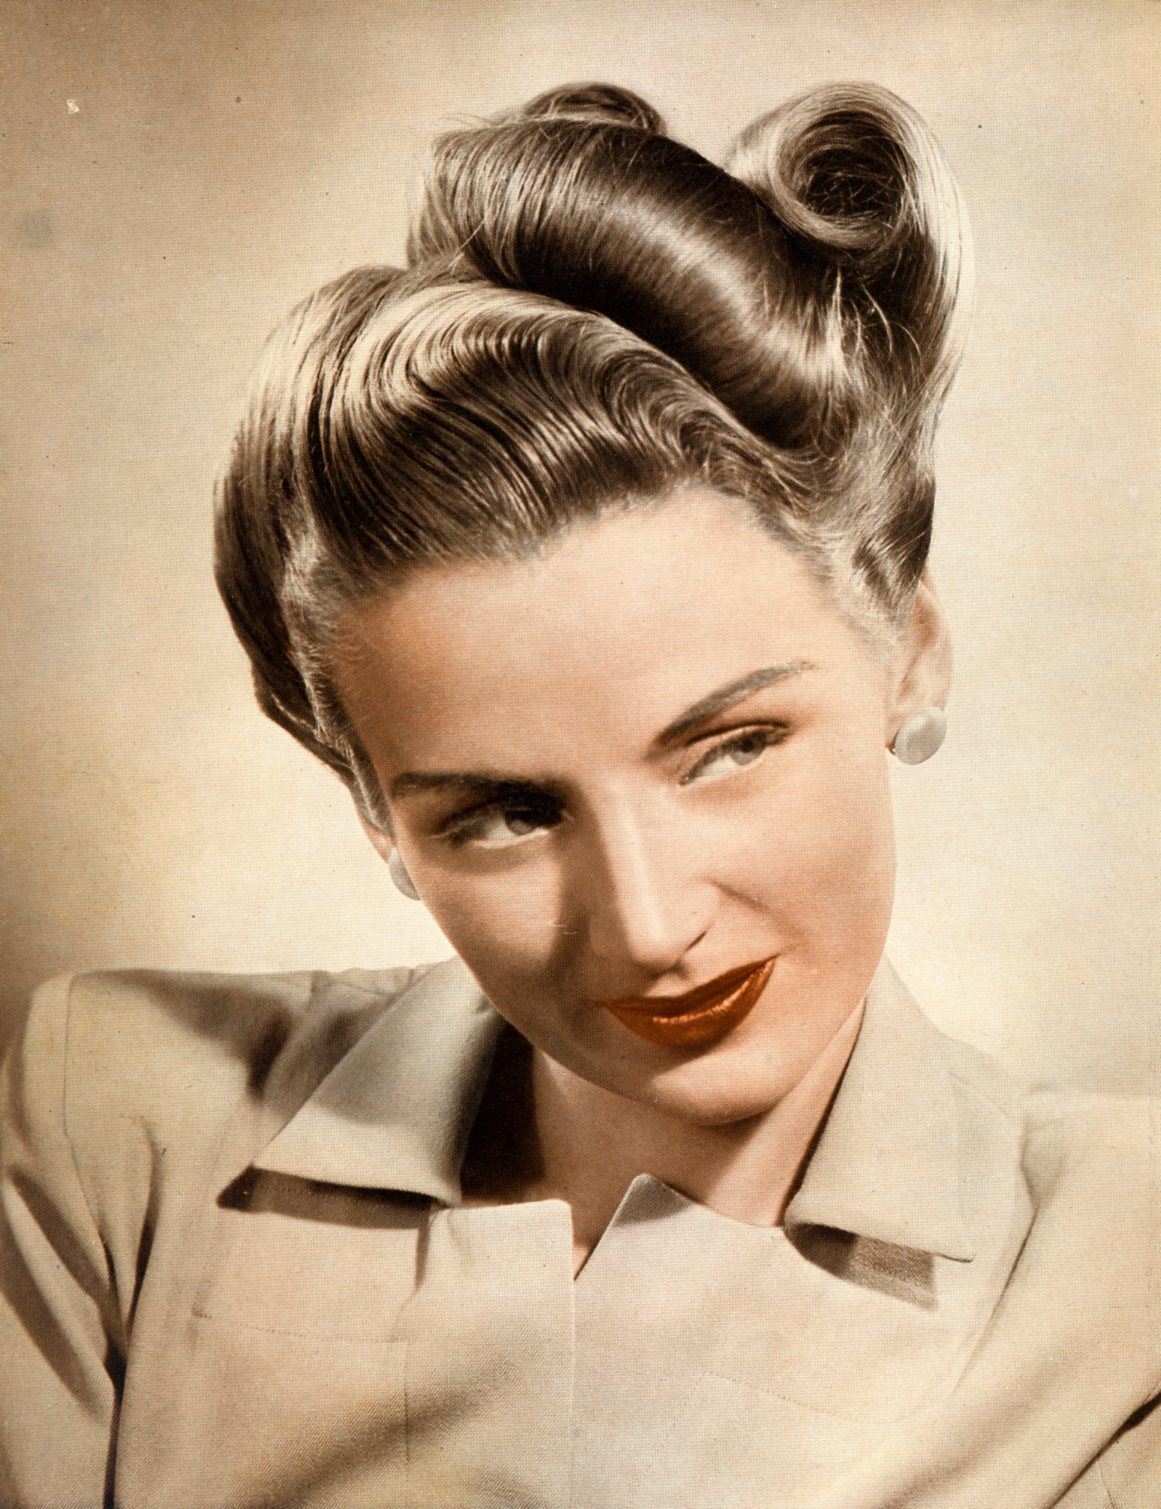 Curly Hair Vintage Style : Beauty is a thing of the past august